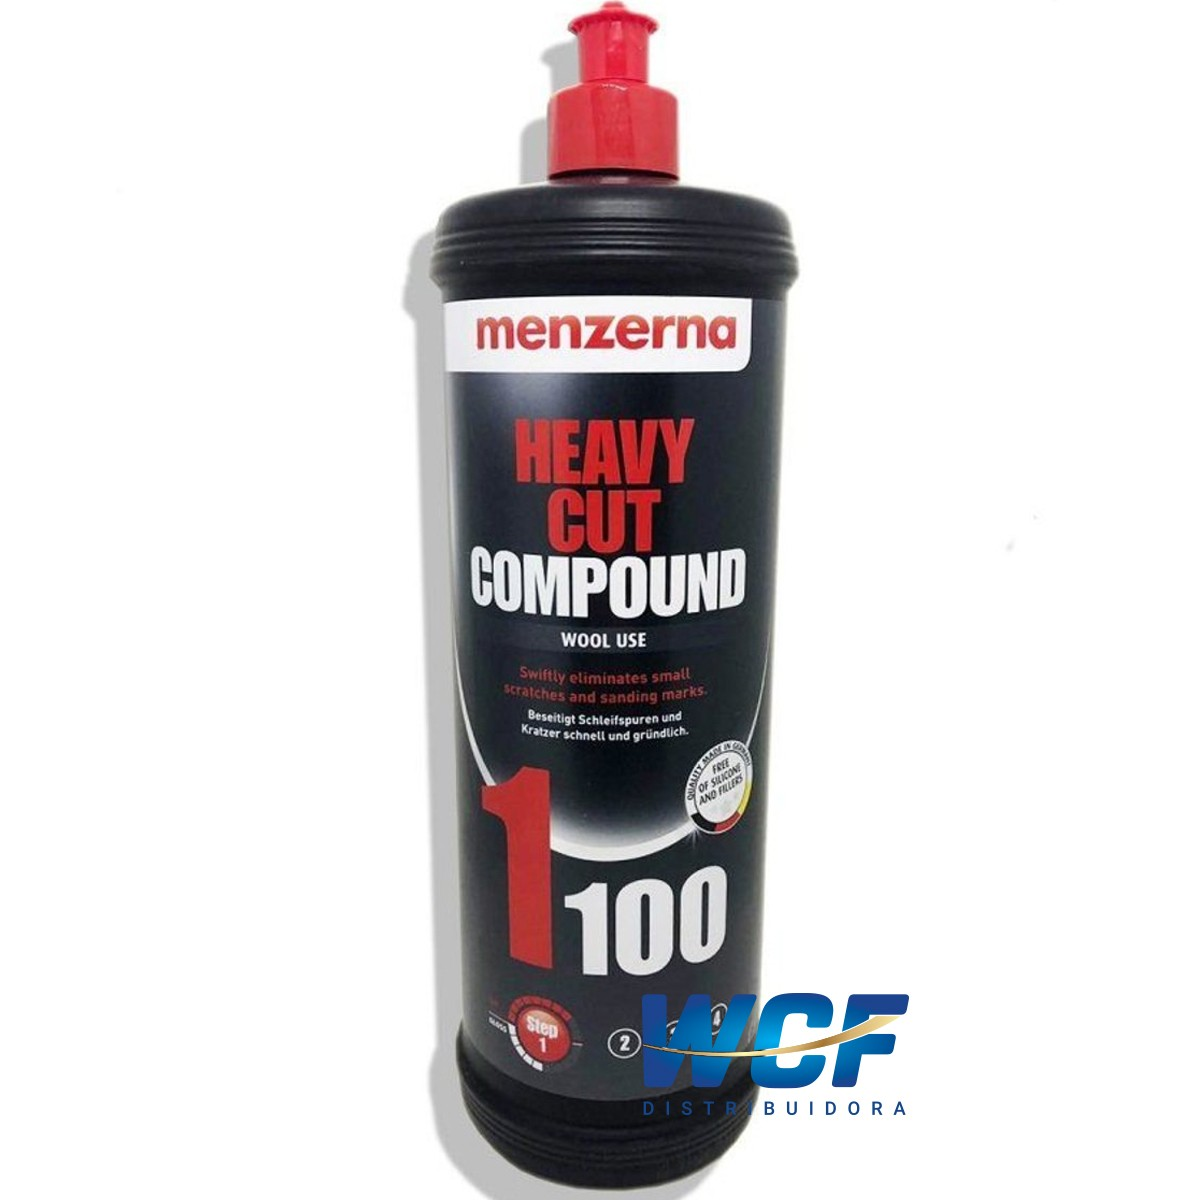 HEAVY CUT COMPOUND WOOL USE 1100 1LT MENZERNA